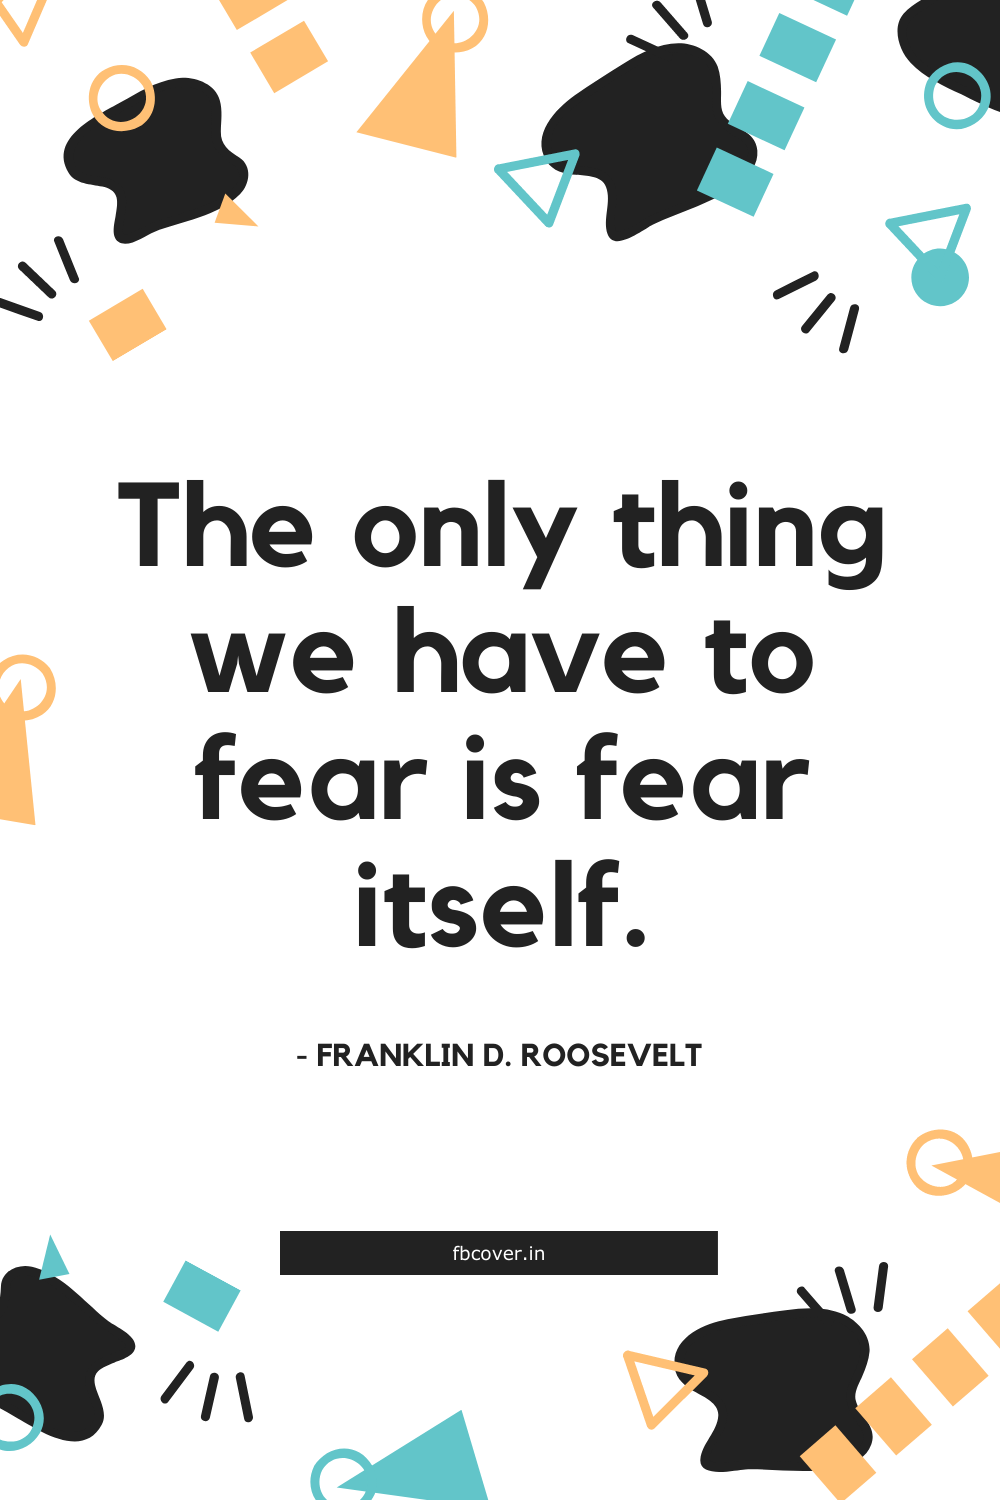 the only thing we have to fear is fear itself quote, franklin d roosevelt quotes